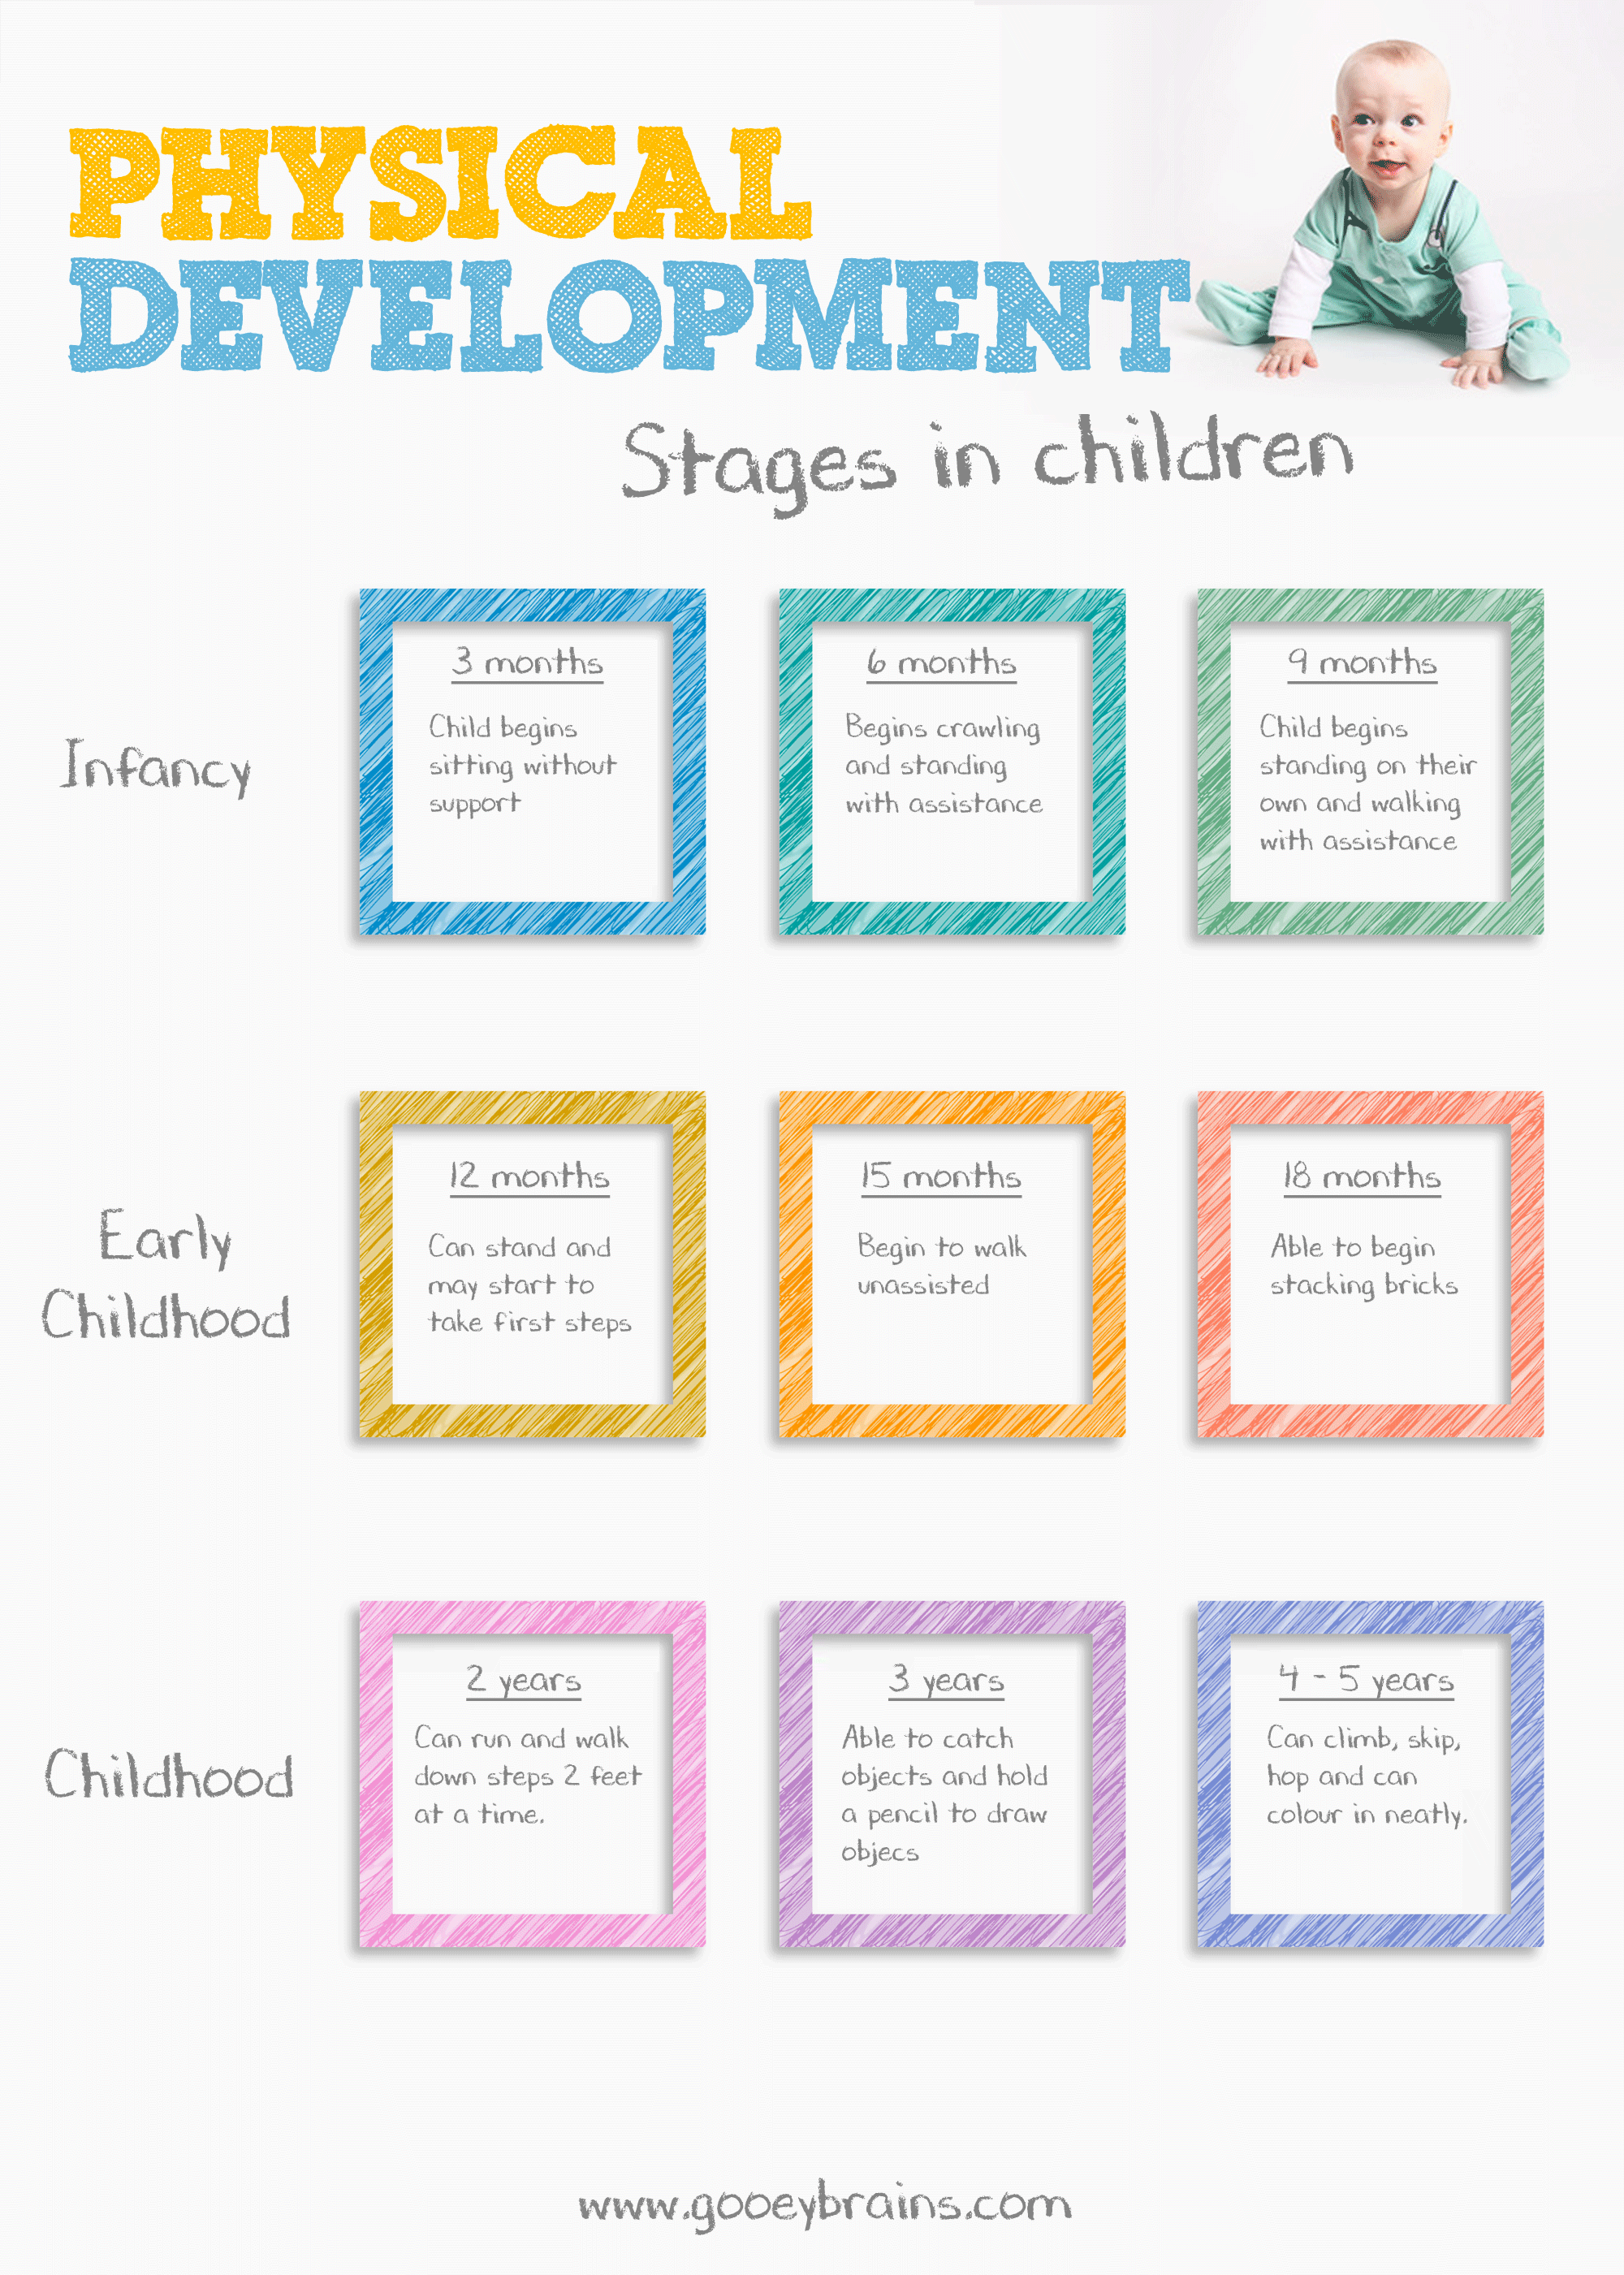 The physical development of the child in the first three months of life